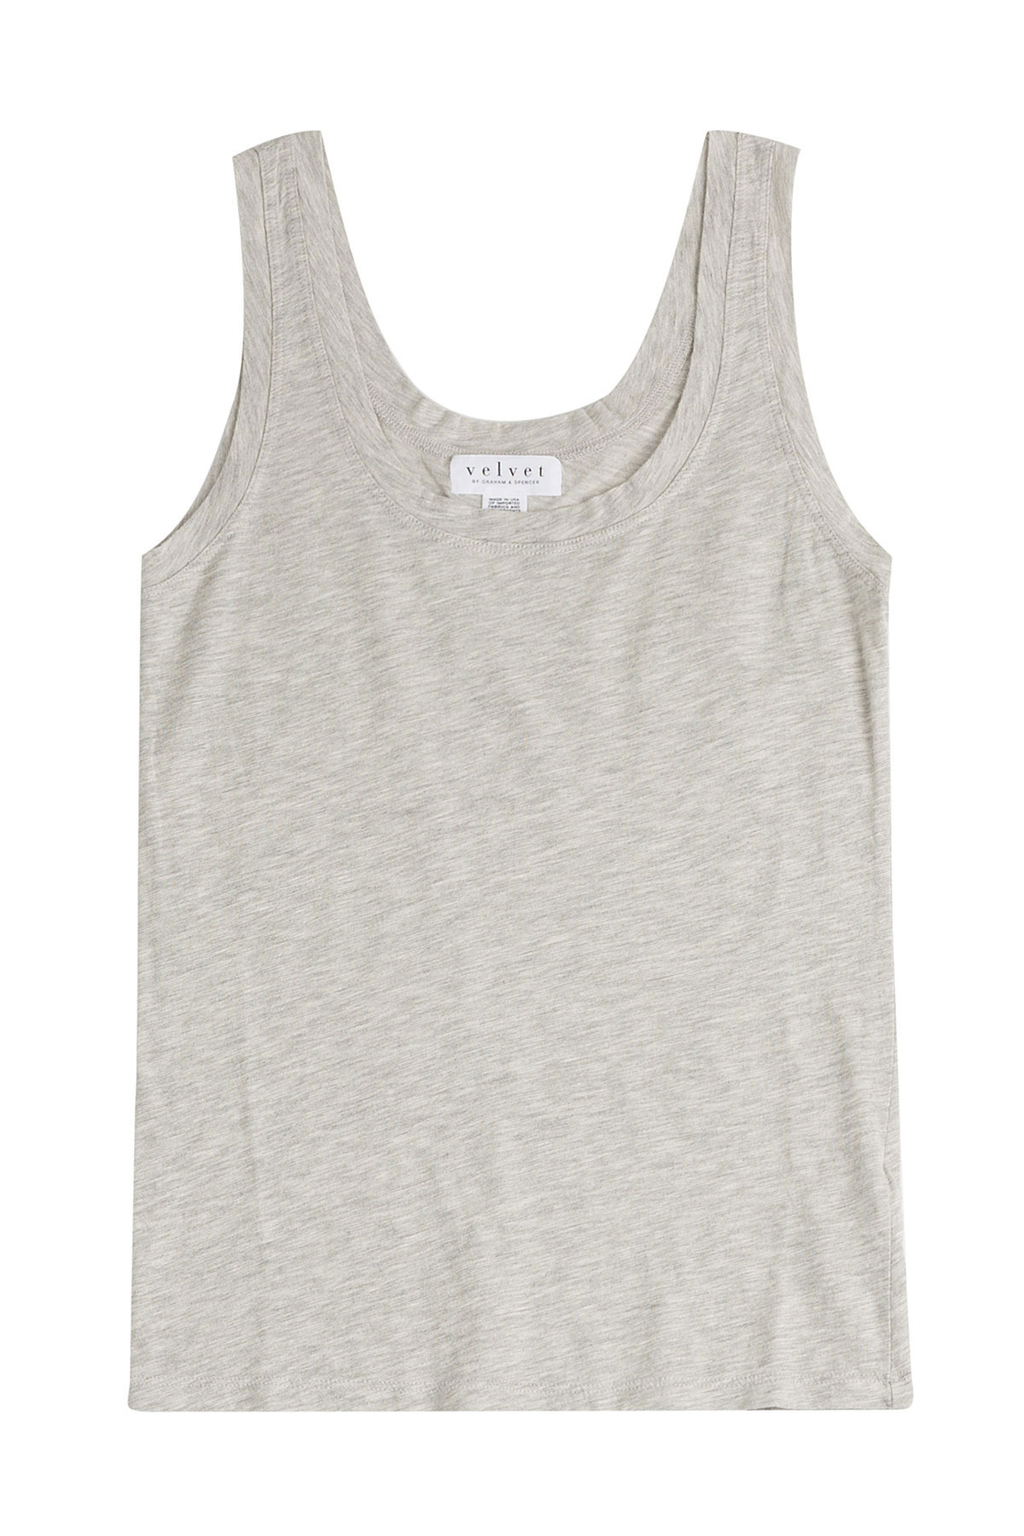 Cotton Blend Tank Grey - sleeve style: standard vest straps/shoulder straps; pattern: plain; back detail: cowl/draping/scoop at back; style: vest top; predominant colour: mid grey; occasions: casual, creative work; length: standard; neckline: scoop; fibres: cotton - stretch; fit: body skimming; sleeve length: sleeveless; pattern type: fabric; texture group: jersey - stretchy/drapey; season: s/s 2016